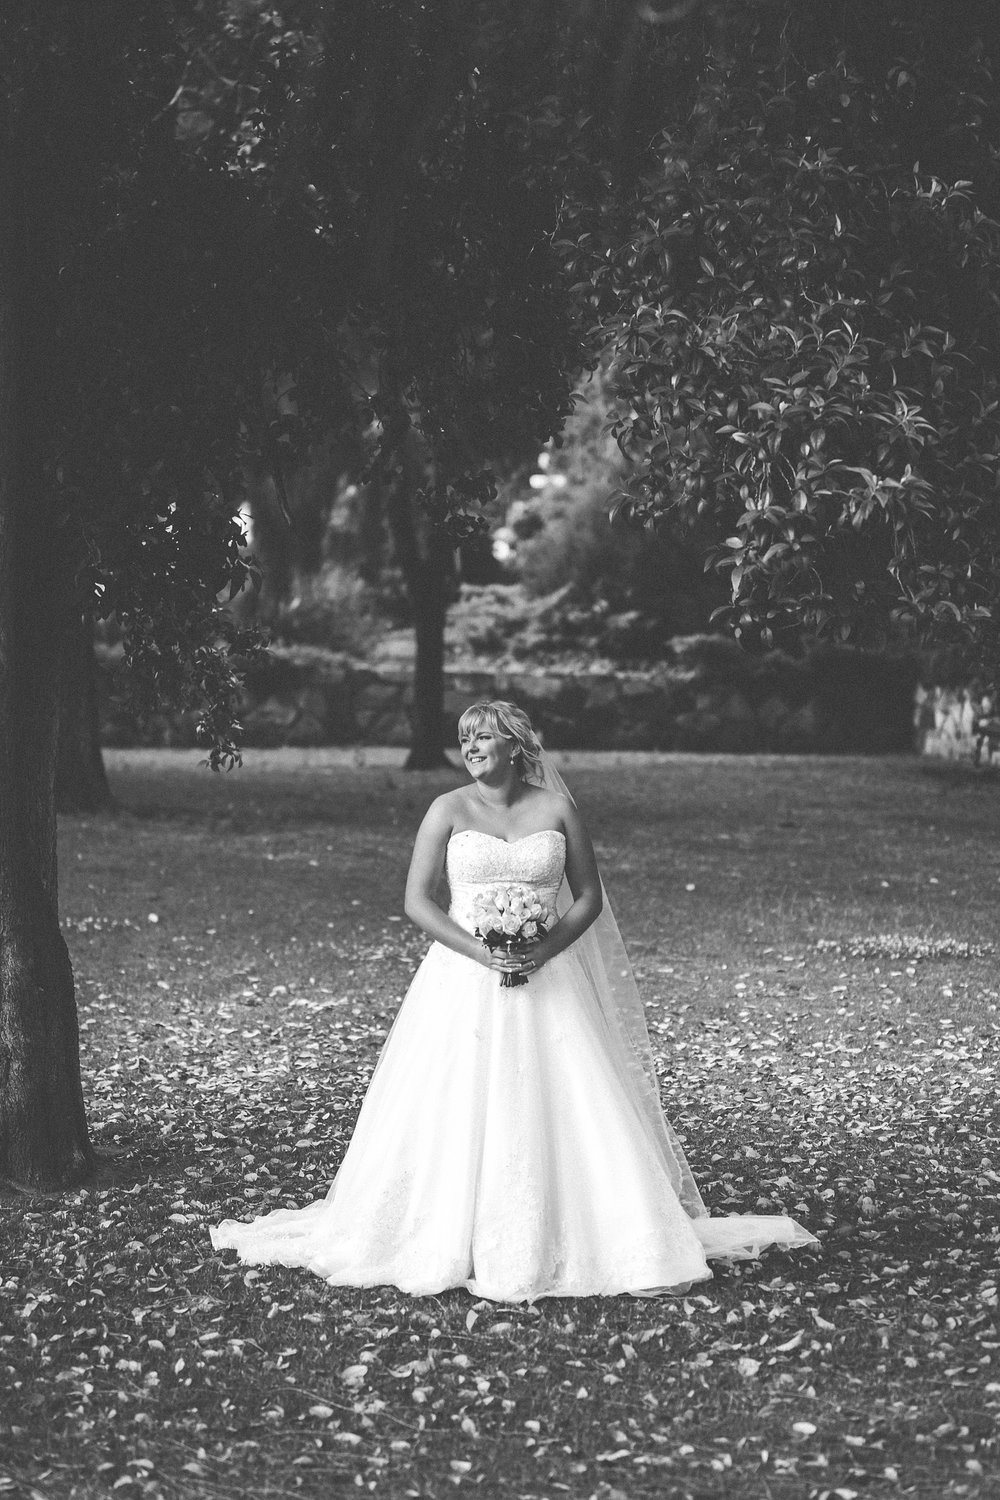 Adelaiade Wedding Photographer - pardon my french photography 6.jpg